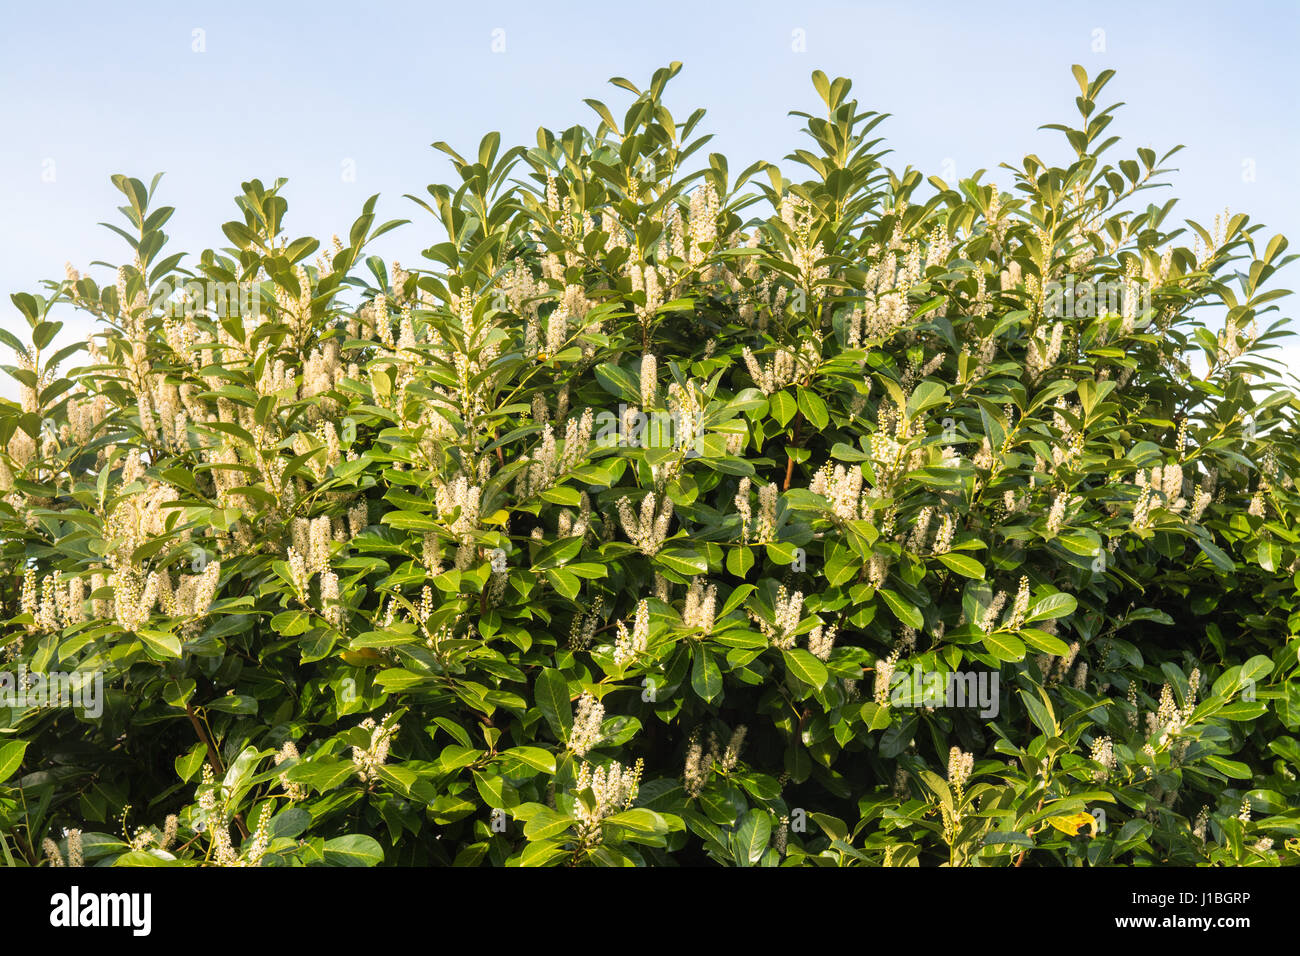 Cherry Laurel flowers in spring - Prunus Laurocerasus flowers - Stock Image